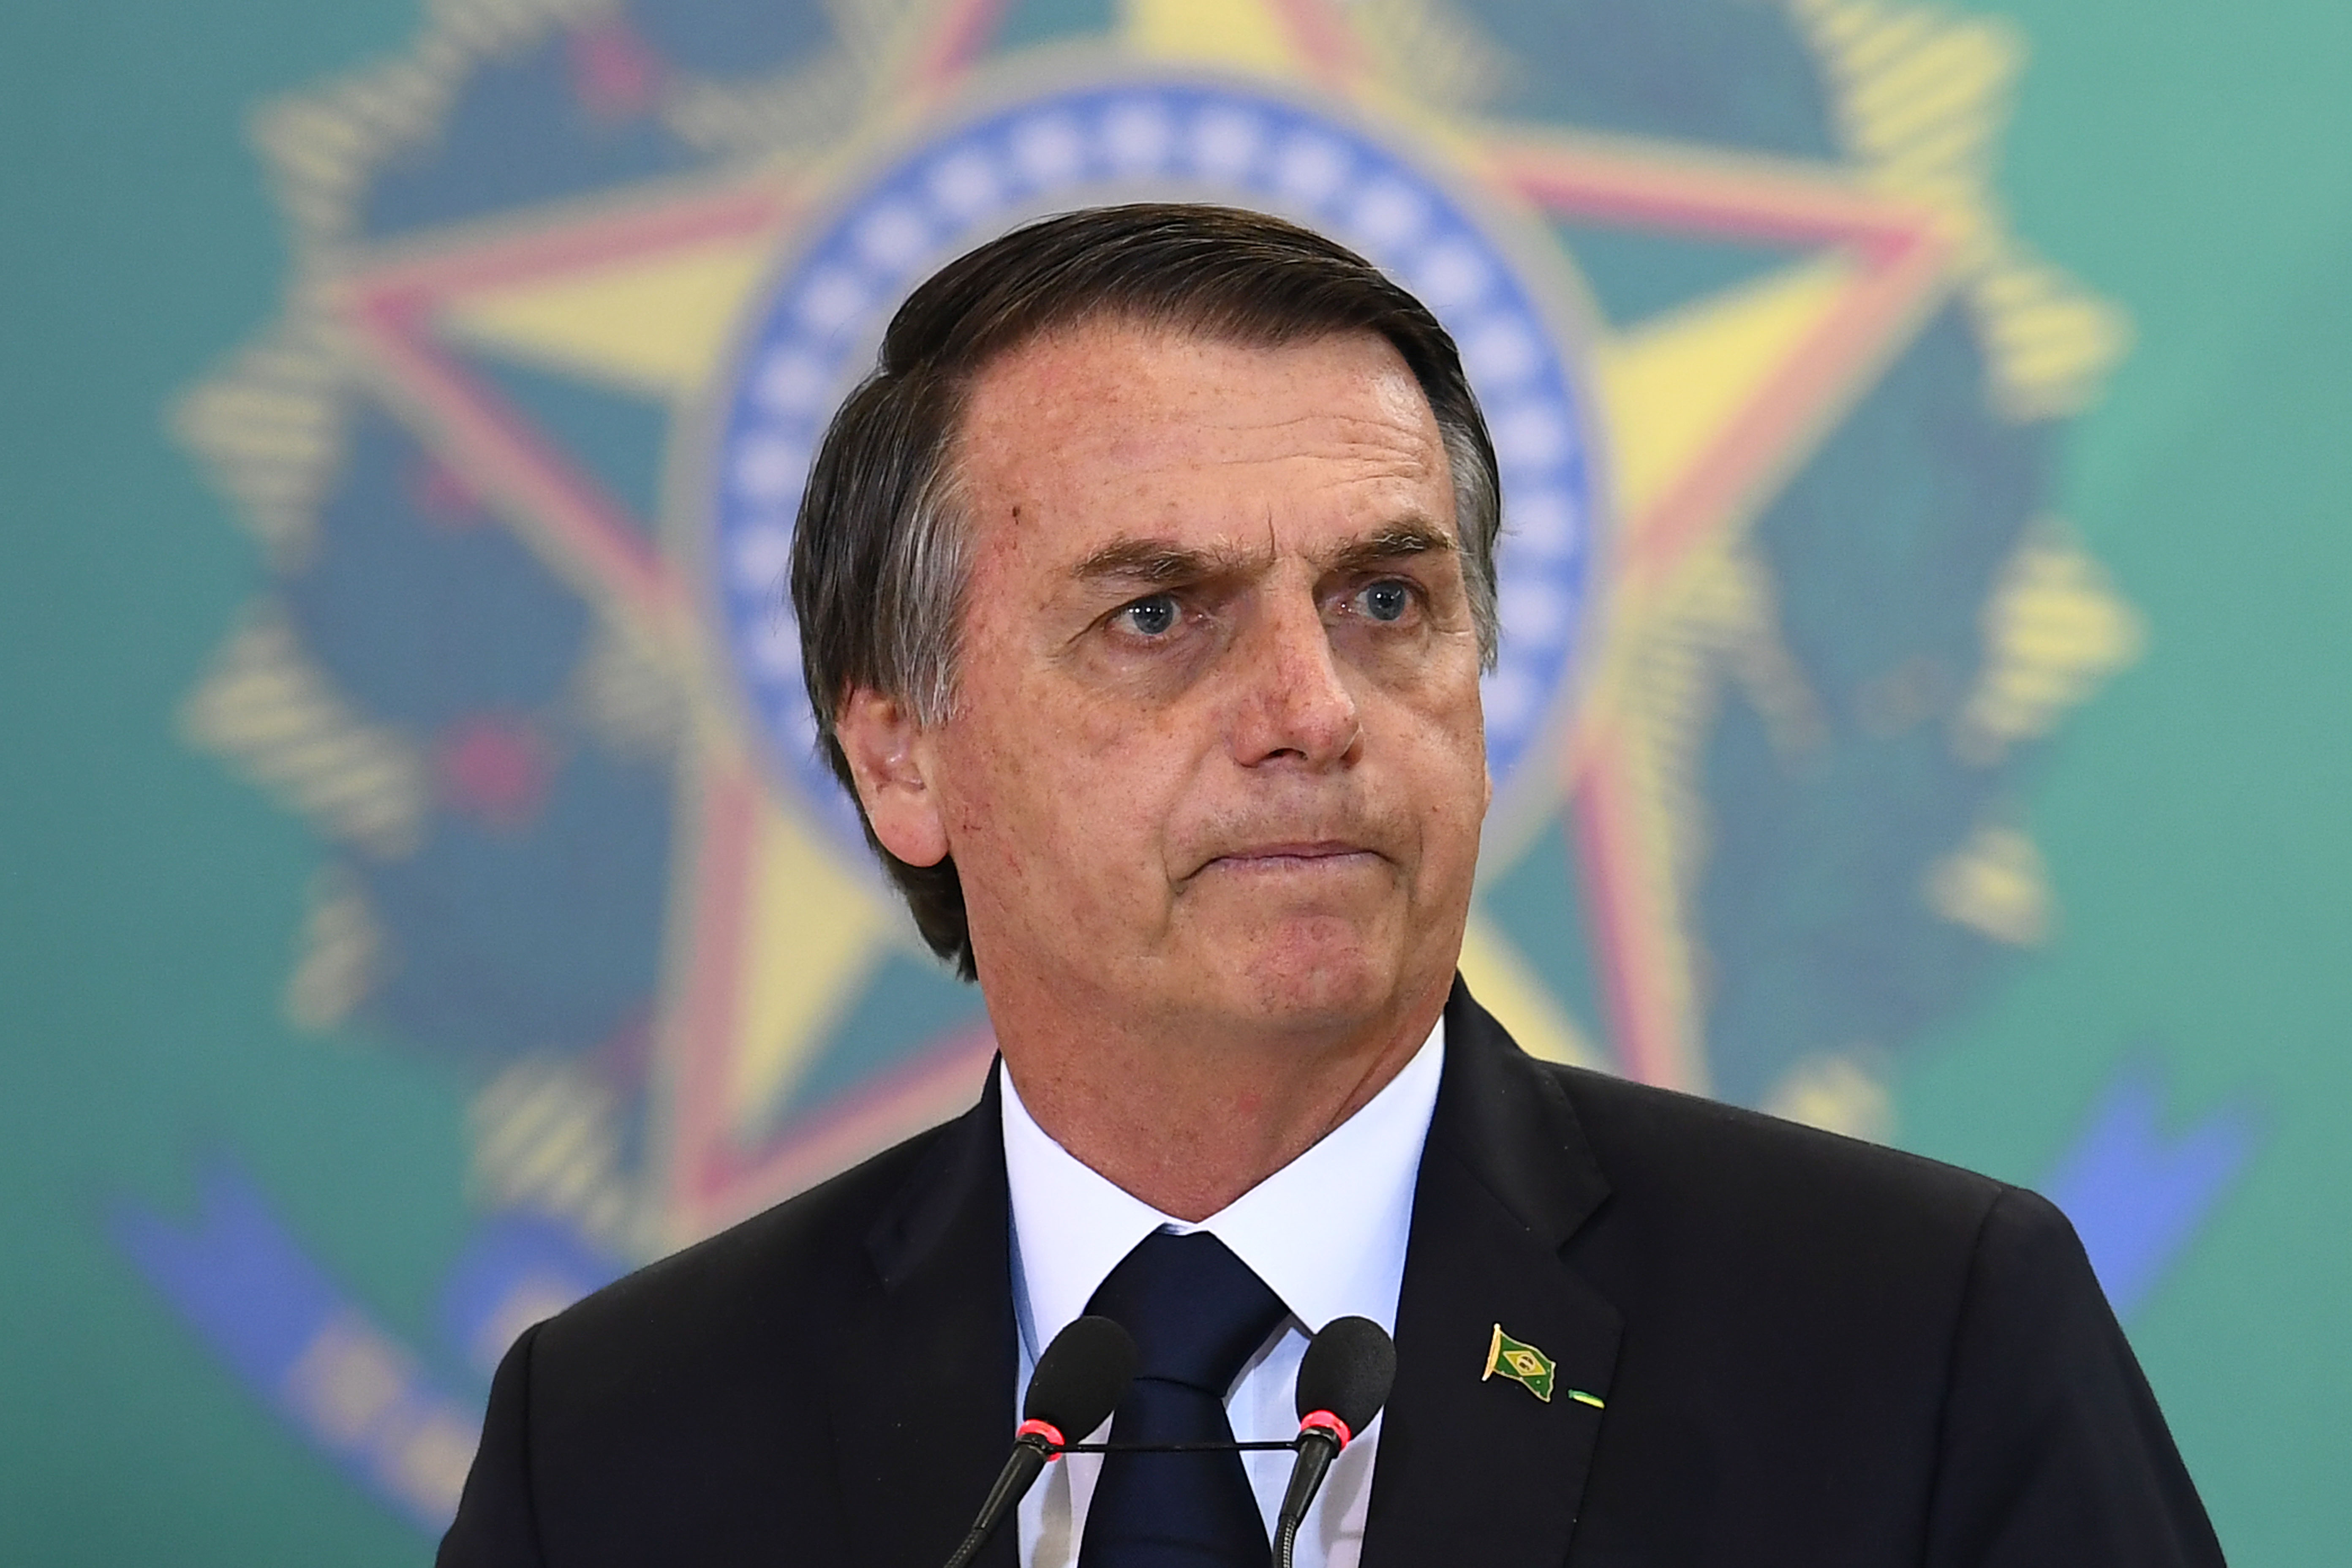 Brazilian President Jair Bolsonaro delivers a speech during the appointment ceremony of the new heads of public banks, at Planalto Palace in Brasilia on January 7, 2019